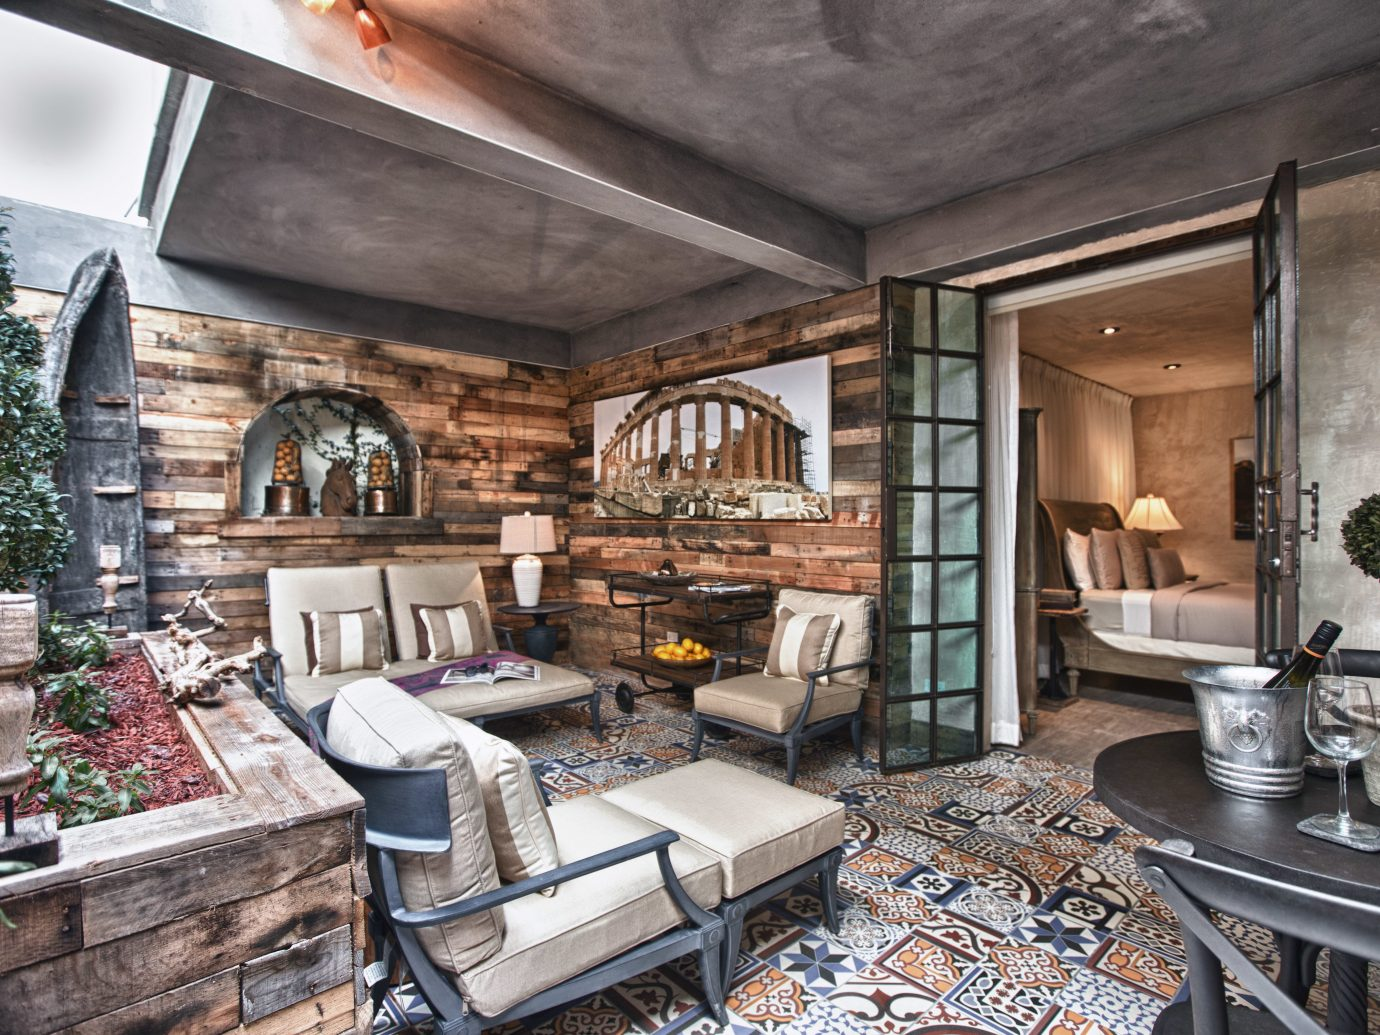 Hotels Romance Trip Ideas indoor room property living room home ceiling estate house interior design real estate mansion farmhouse cottage Kitchen furniture stone